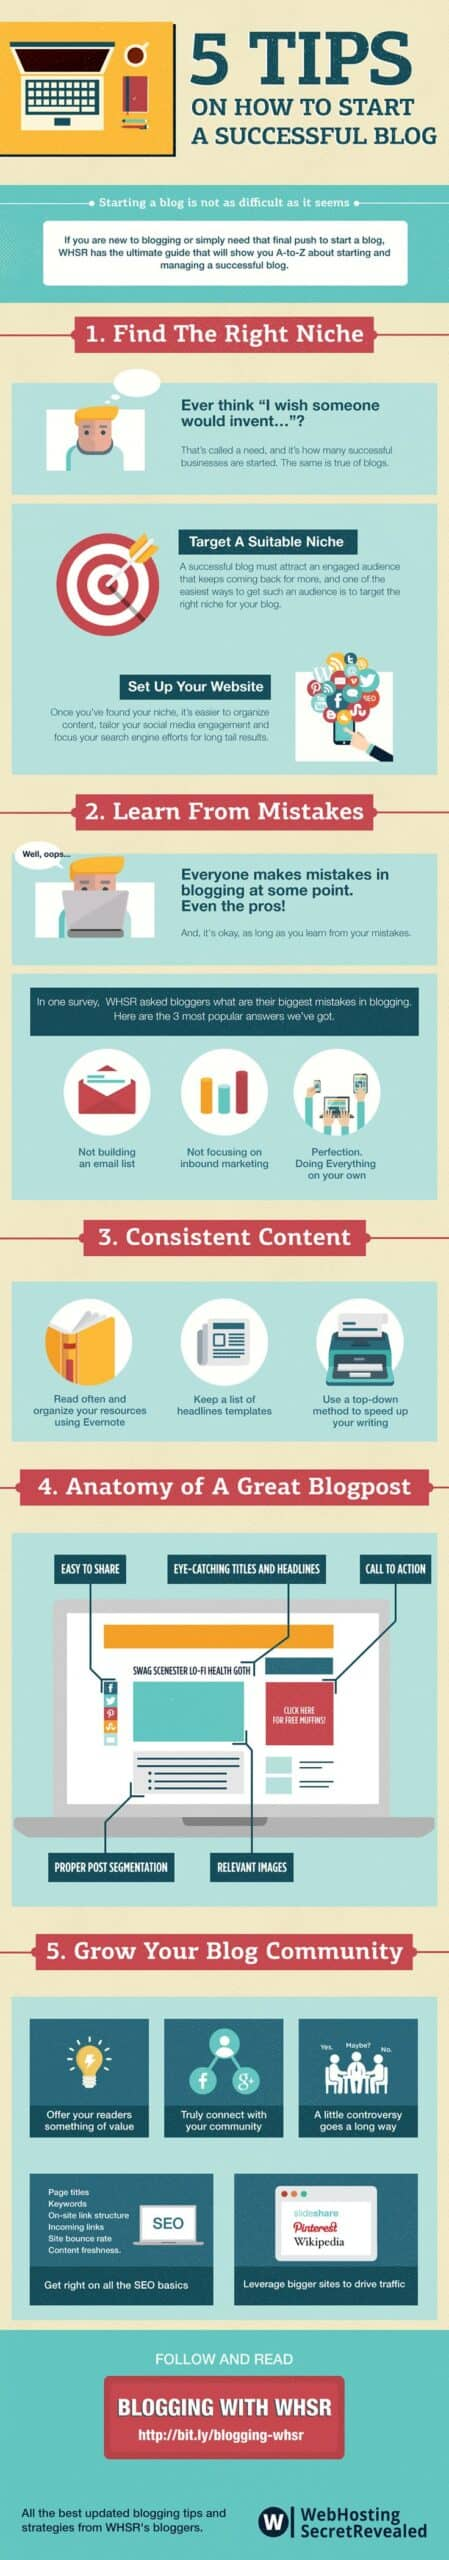 For more tips on how to get your blogging game on point, check out this great infographic.